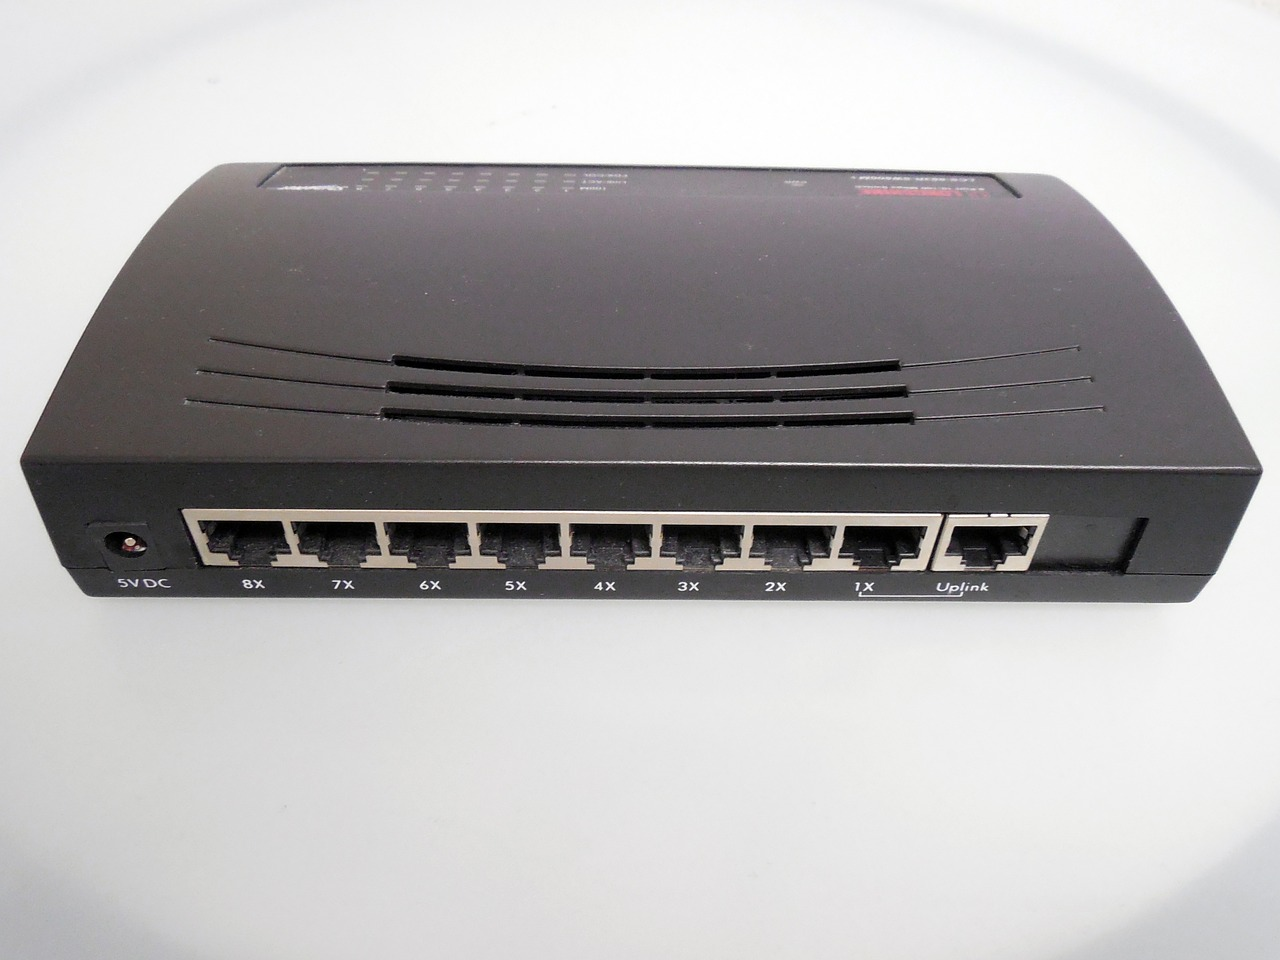 router-670079_1280